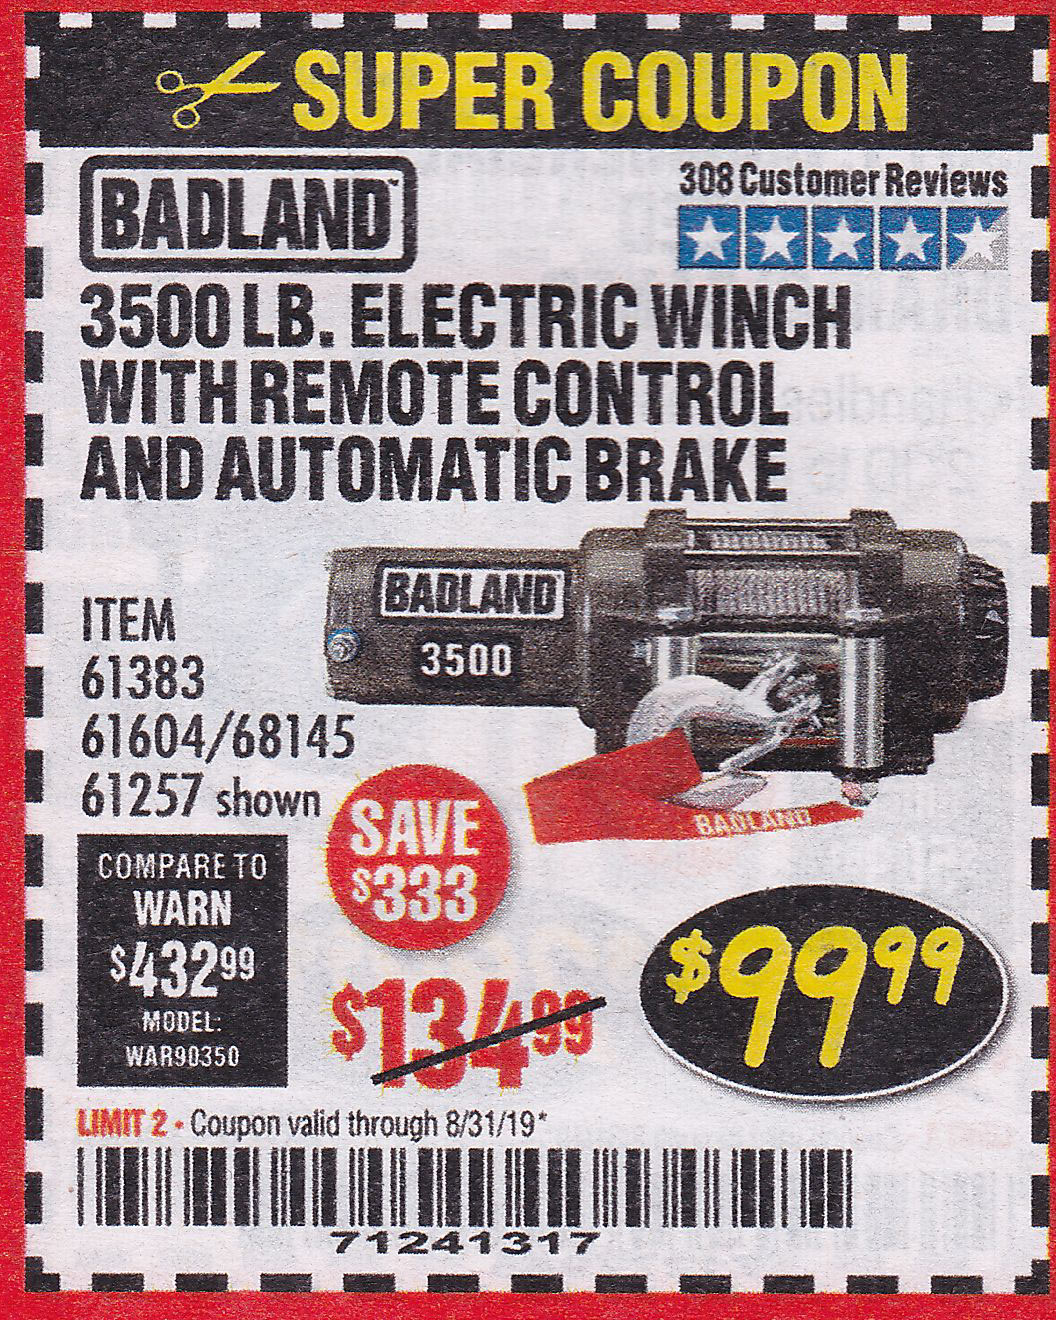 Harbor Freight 3500 LB. ELECTRIC WINCH WITH REMOTE CONTROL AND AUTOMATIC BRAKE coupon